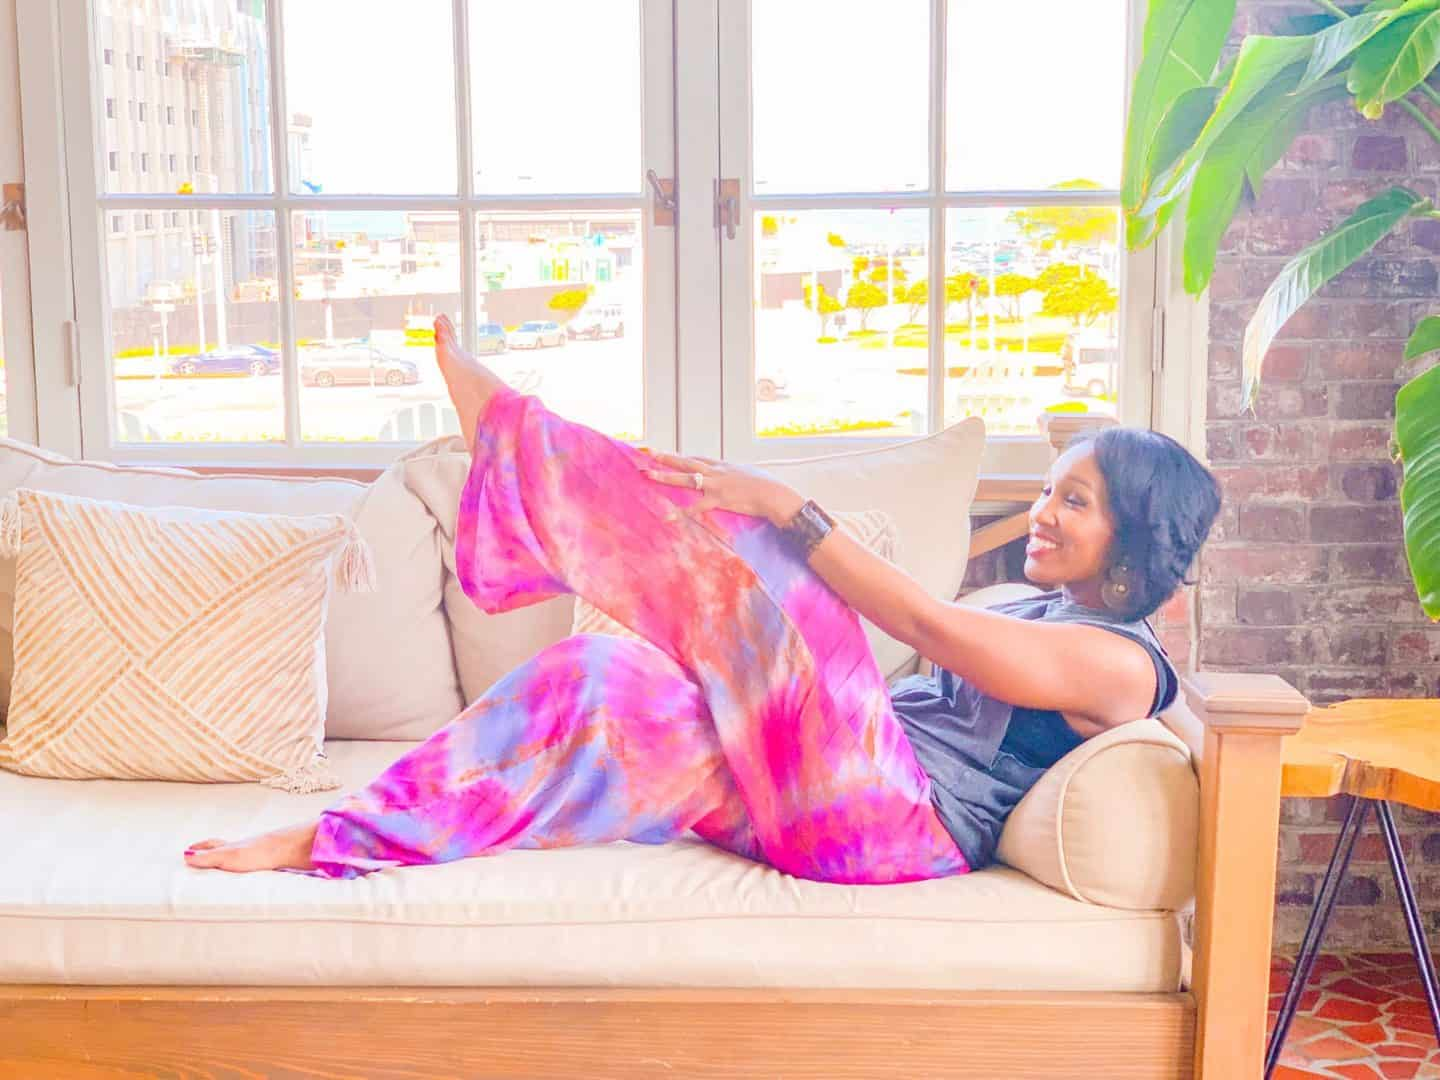 Shaunda Necole- The Secrets Instagram Influencers Use To Achieve Picture Perfect Poses- Even In Poor Lighting- Colorstory app